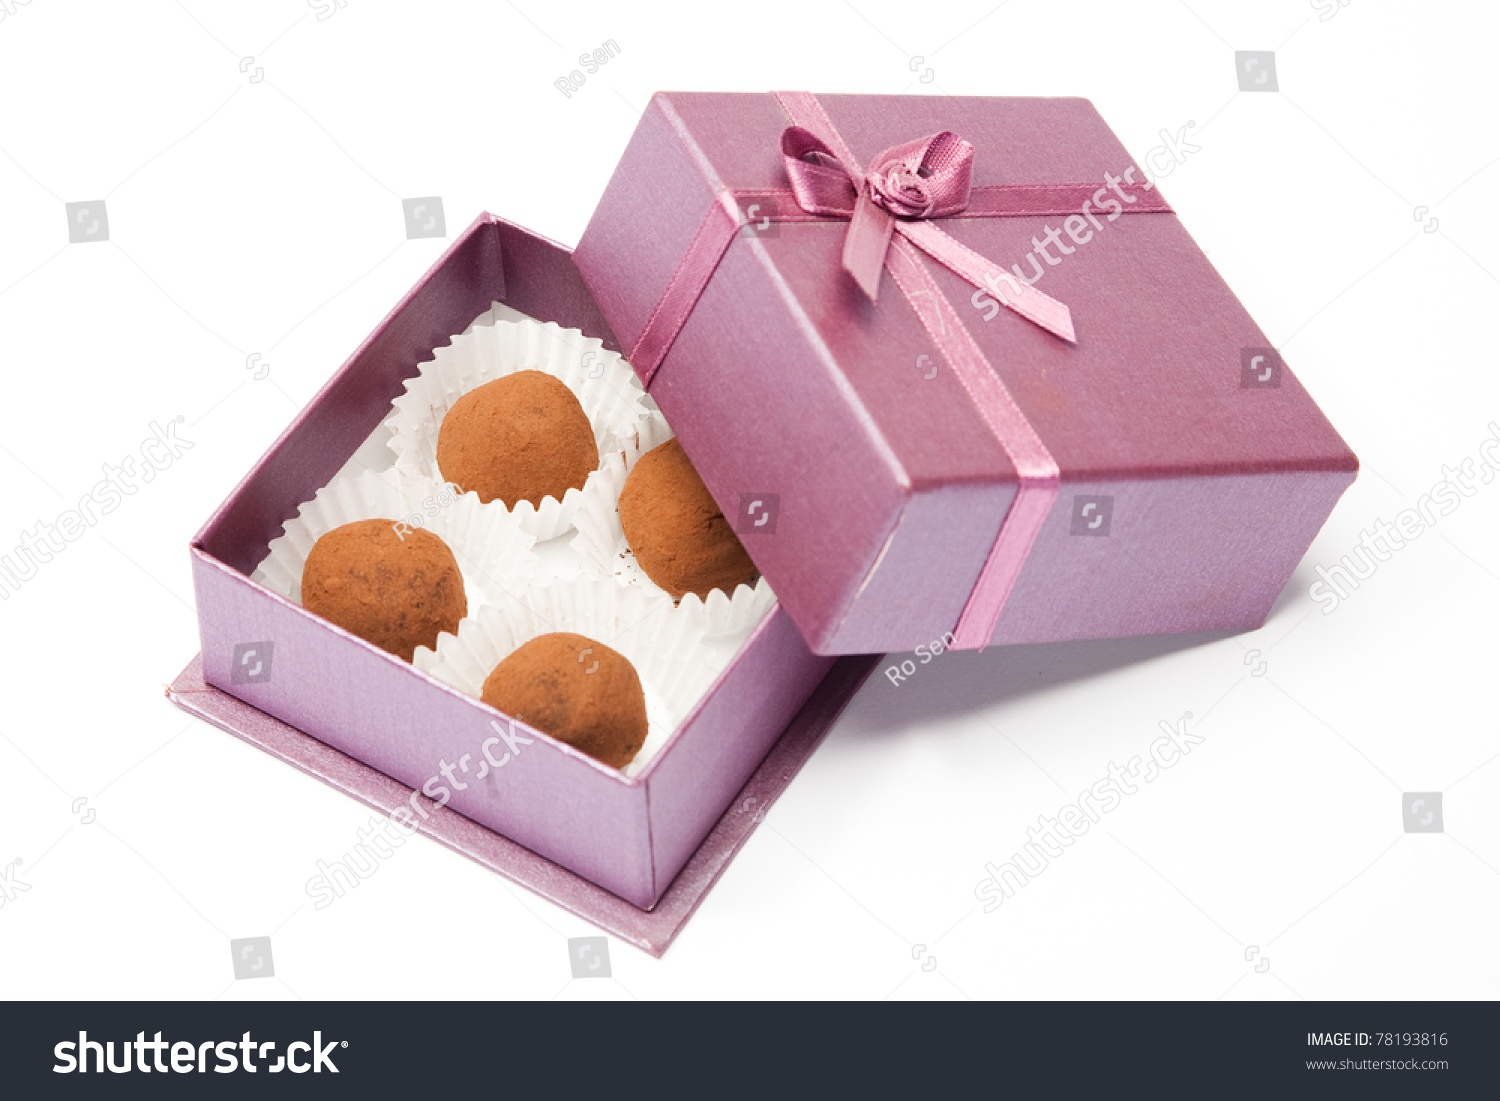 Chocolate Truffles Little Box Stock Photo (Edit Now) 78193816 ...